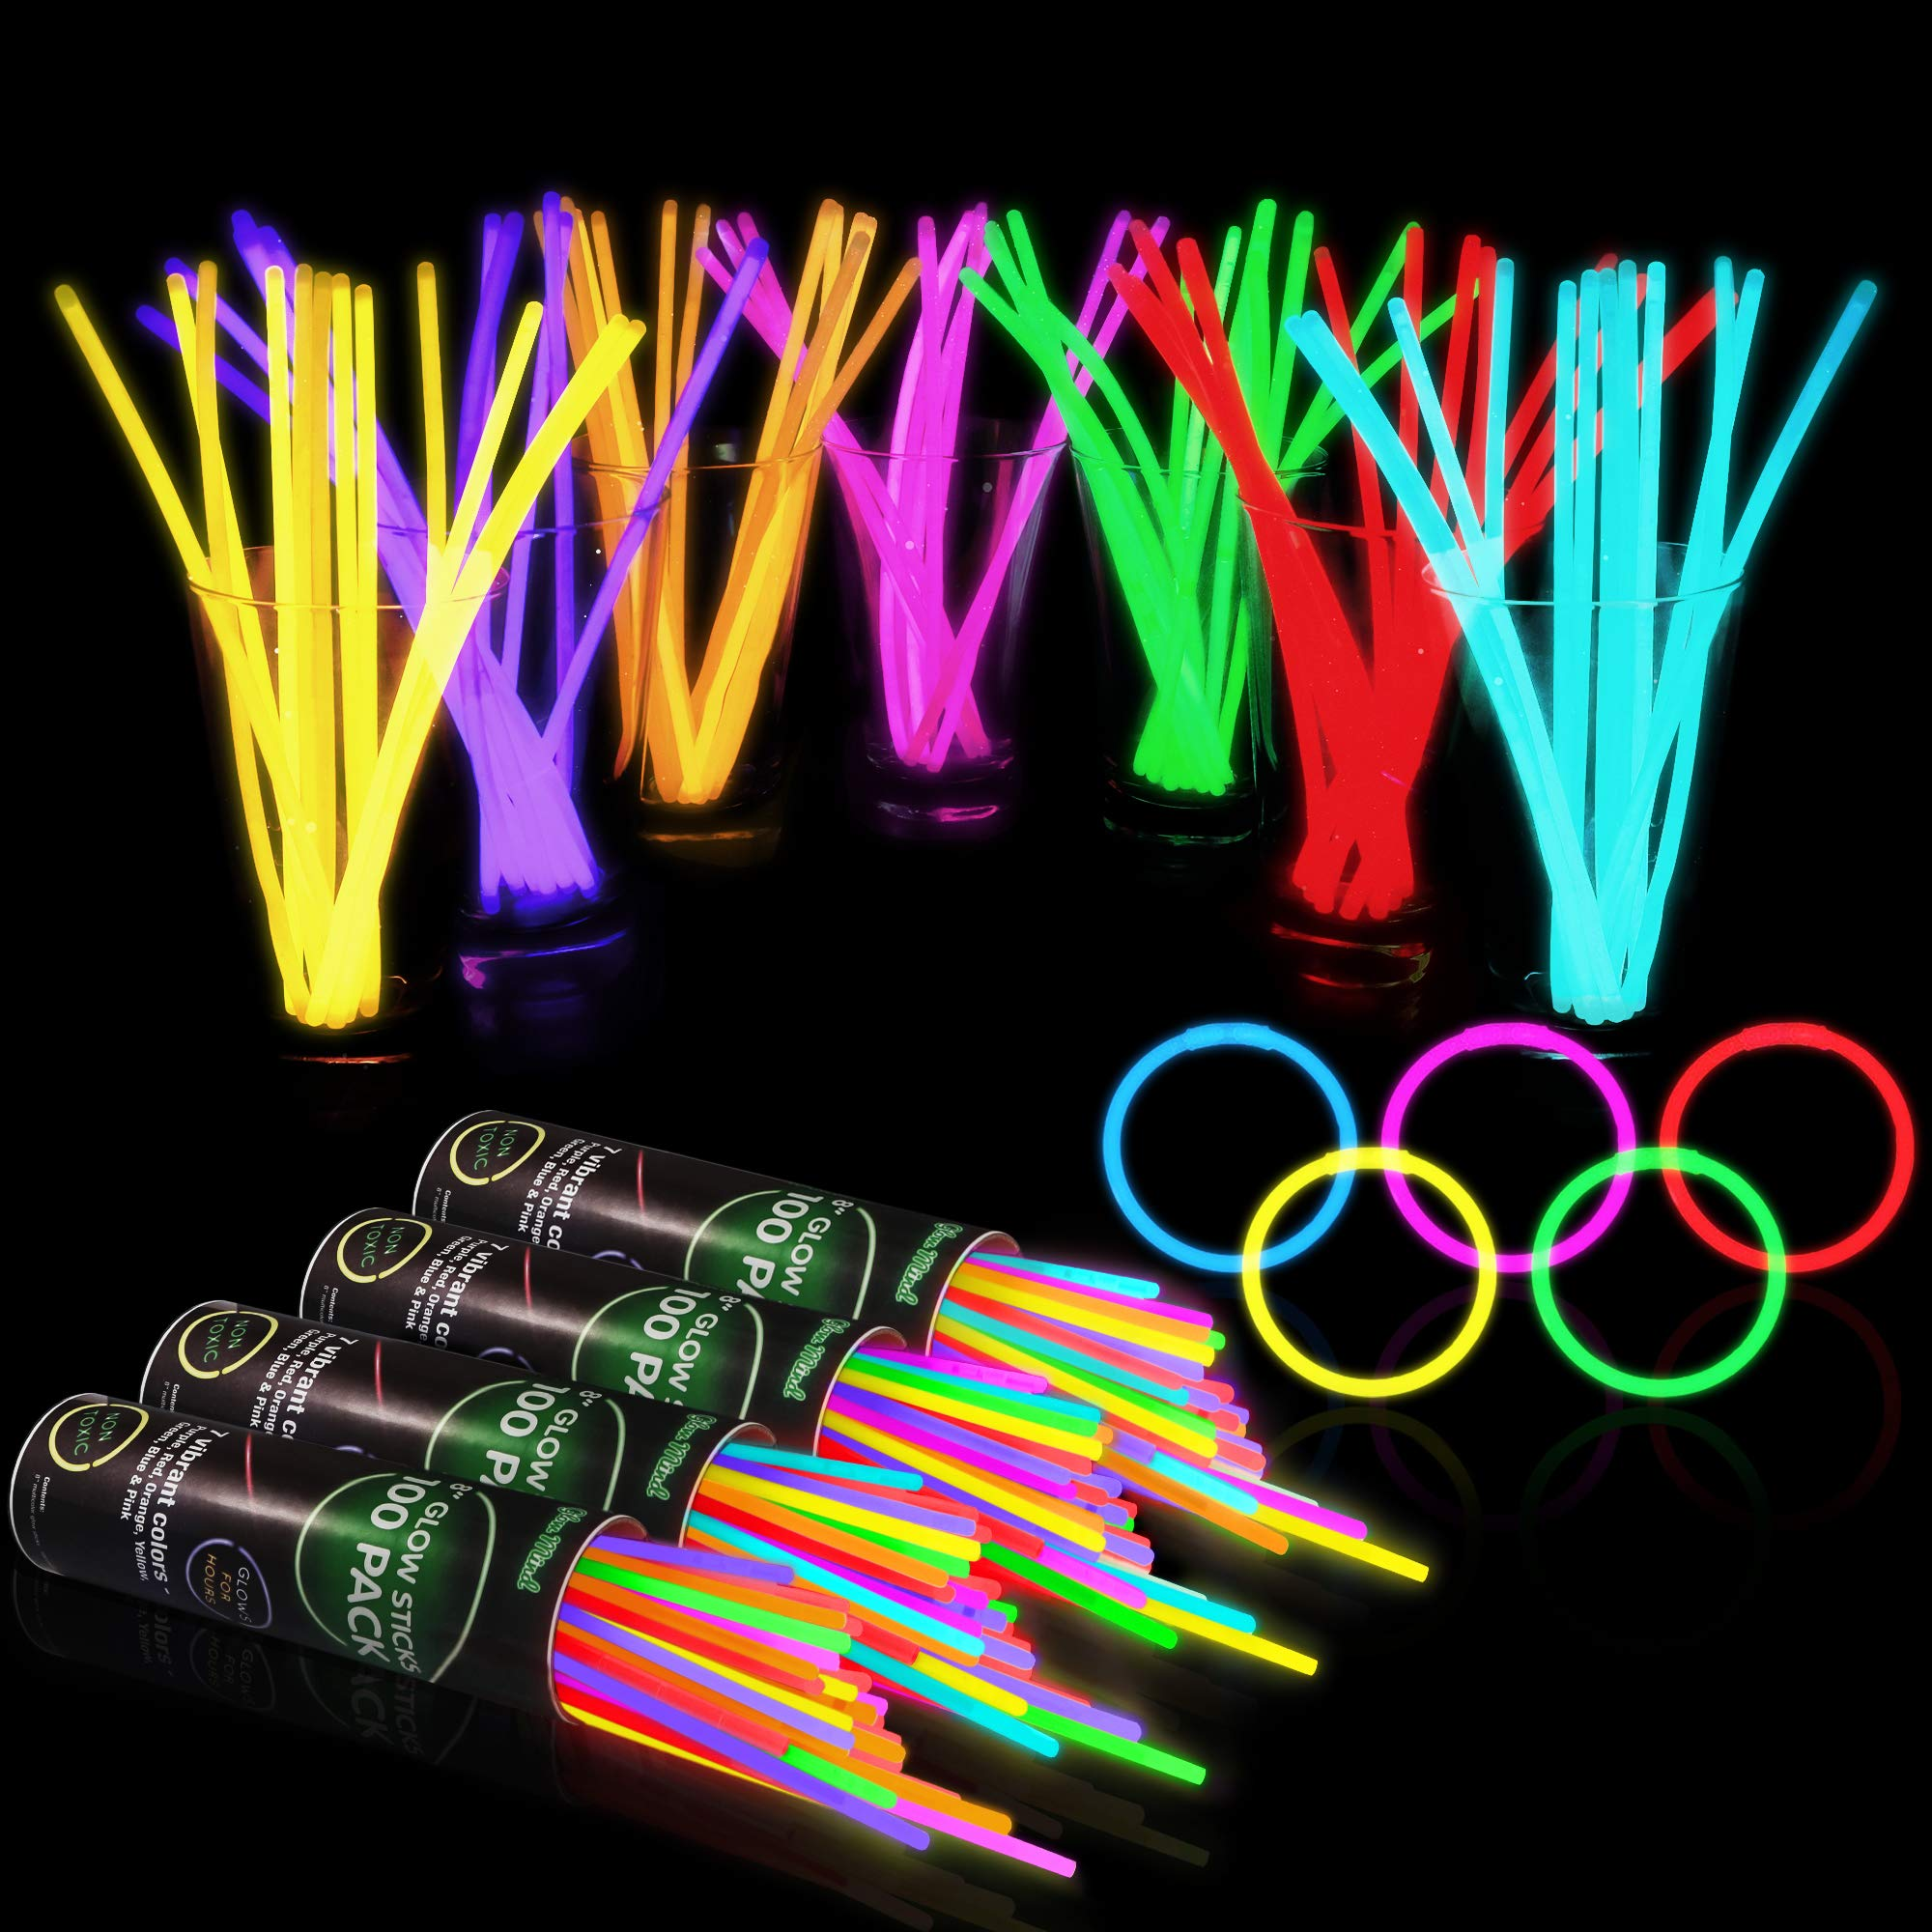 400 Glow Sticks Bulk Party Supplies - Glow in The Dark Fun Party Pack with 8'' Glowsticks and Connectors for Bracelets and Necklaces for Kids and Adults by Glow Mind